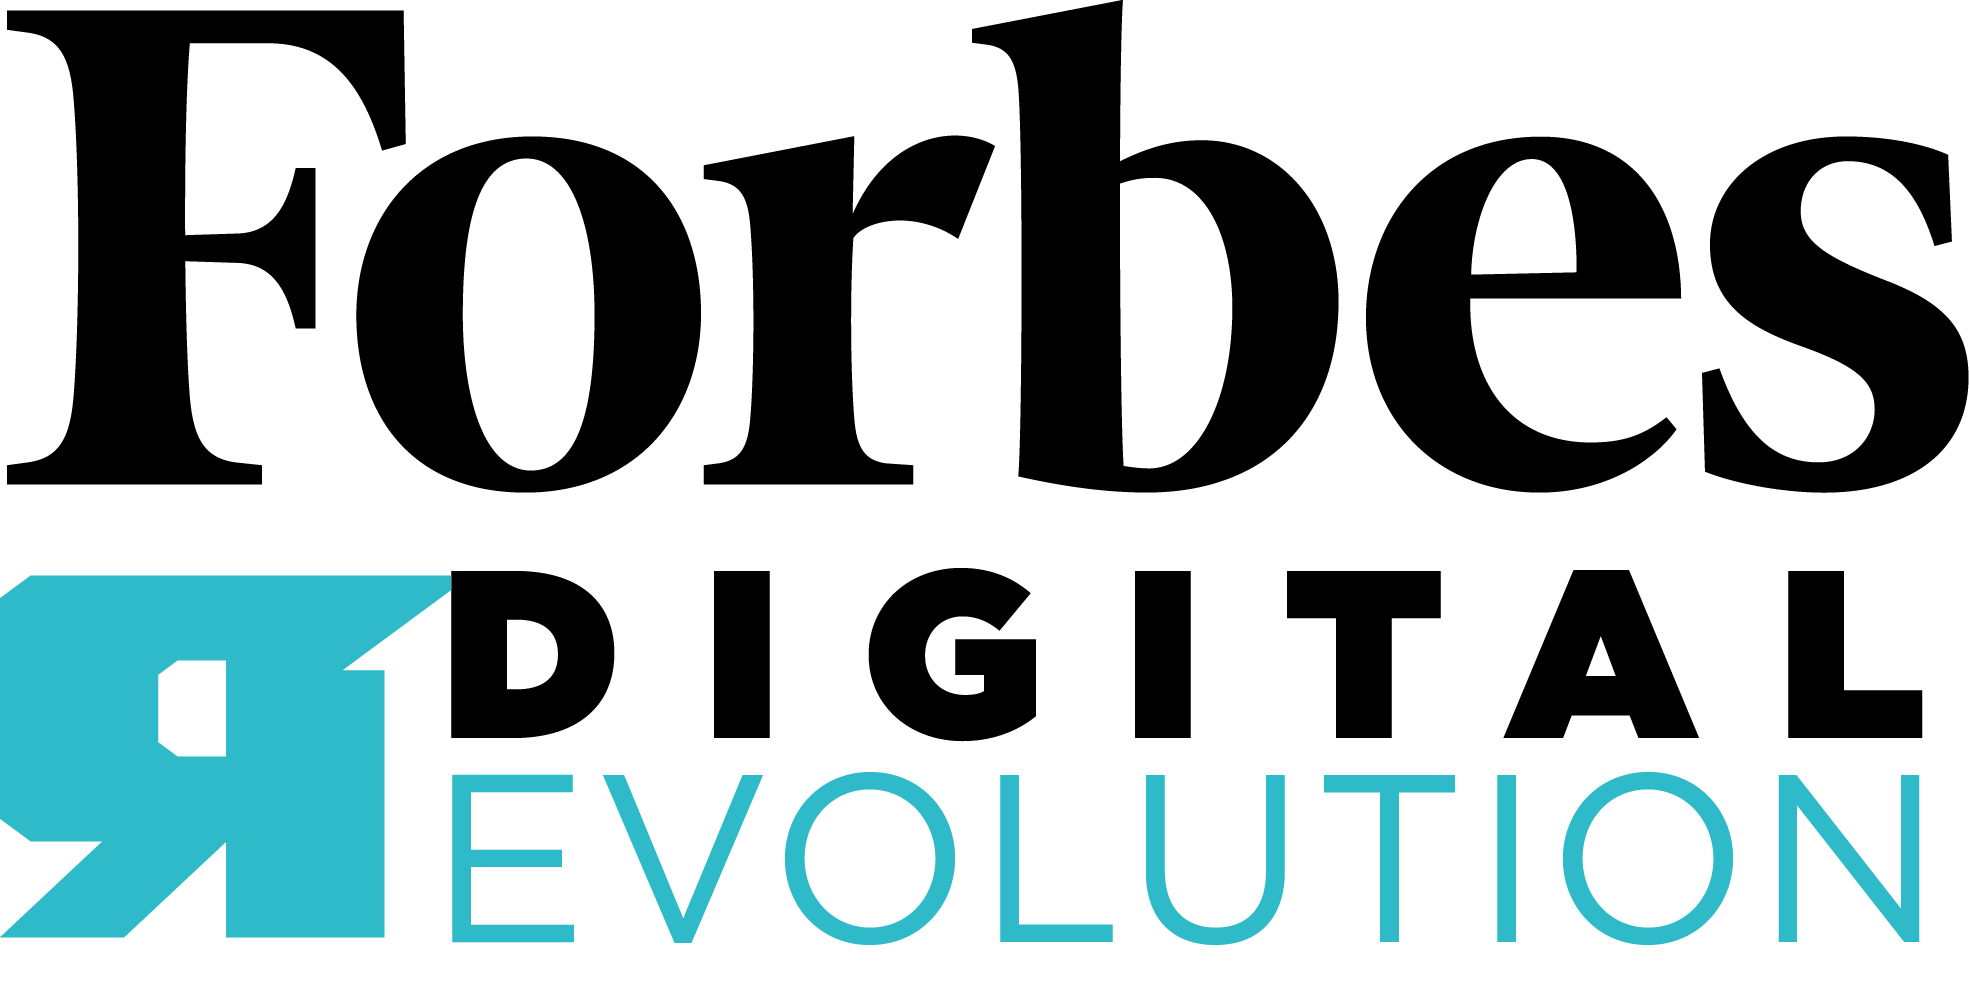 Forbes Digital Revolution